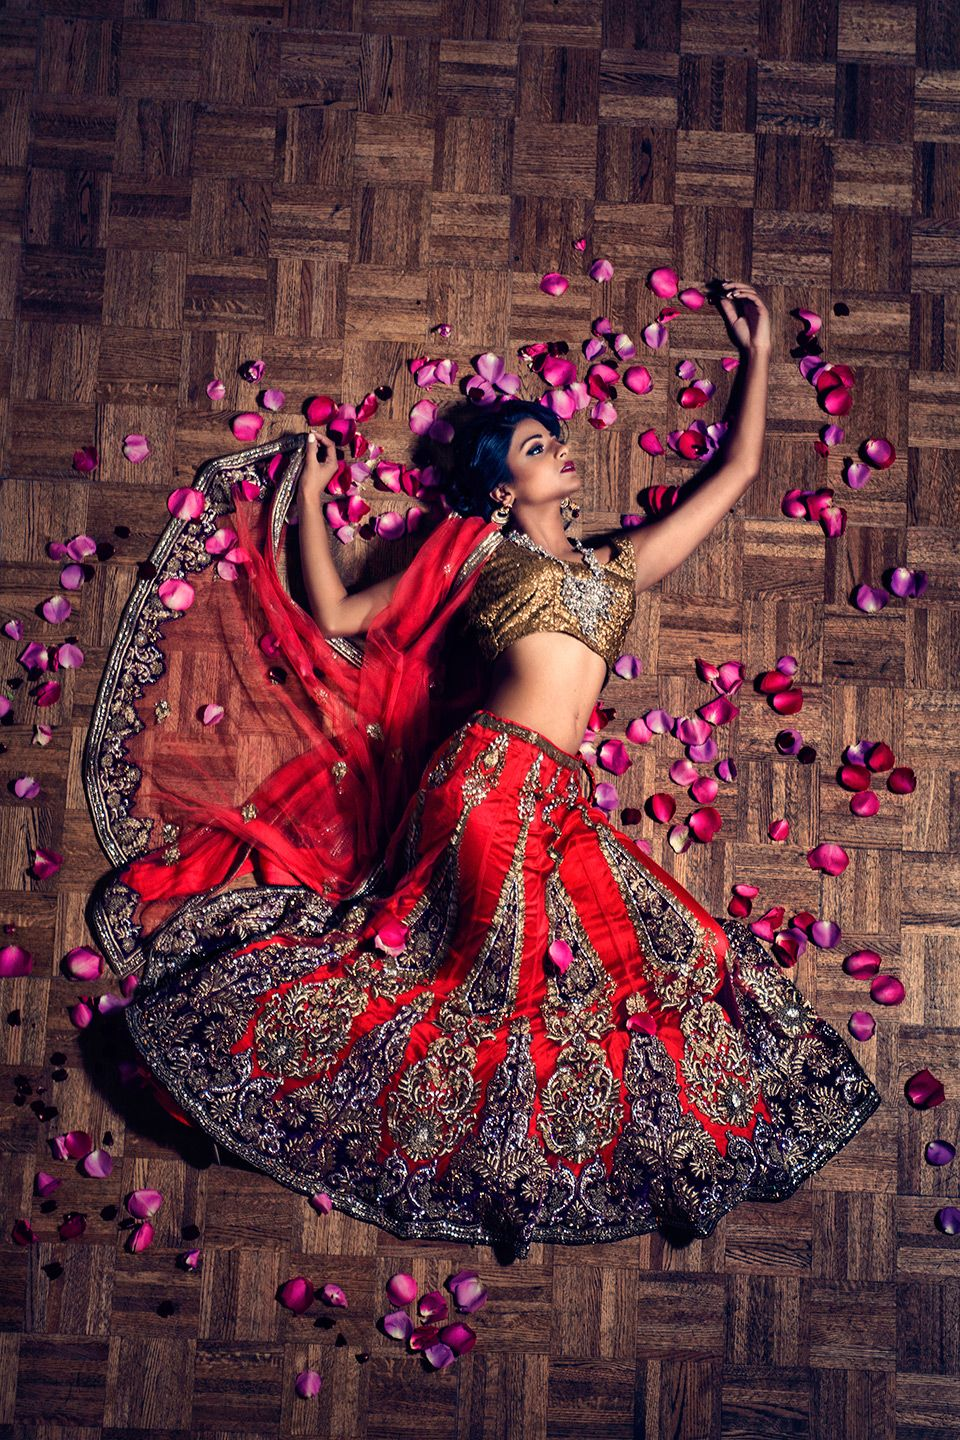 High Fashion In Houston high fashion picture of indian in bridal sari surrounded by